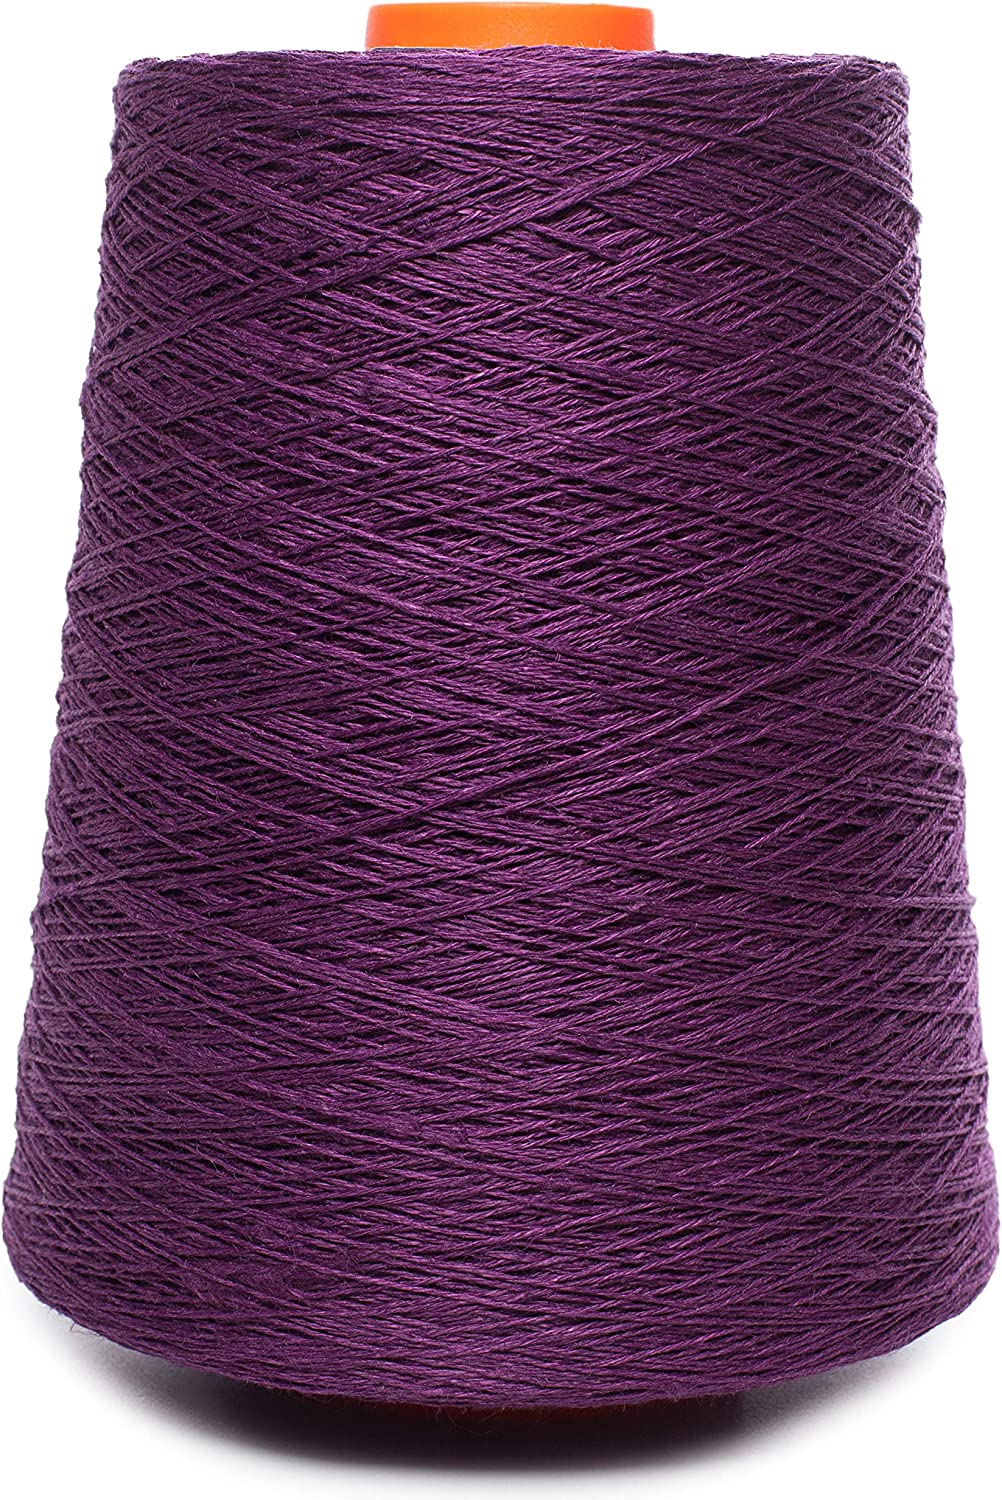 Lusie's Linen Now on sale Factory outlet Yarn - 100% Reddish 1.15 18oz Cone lb